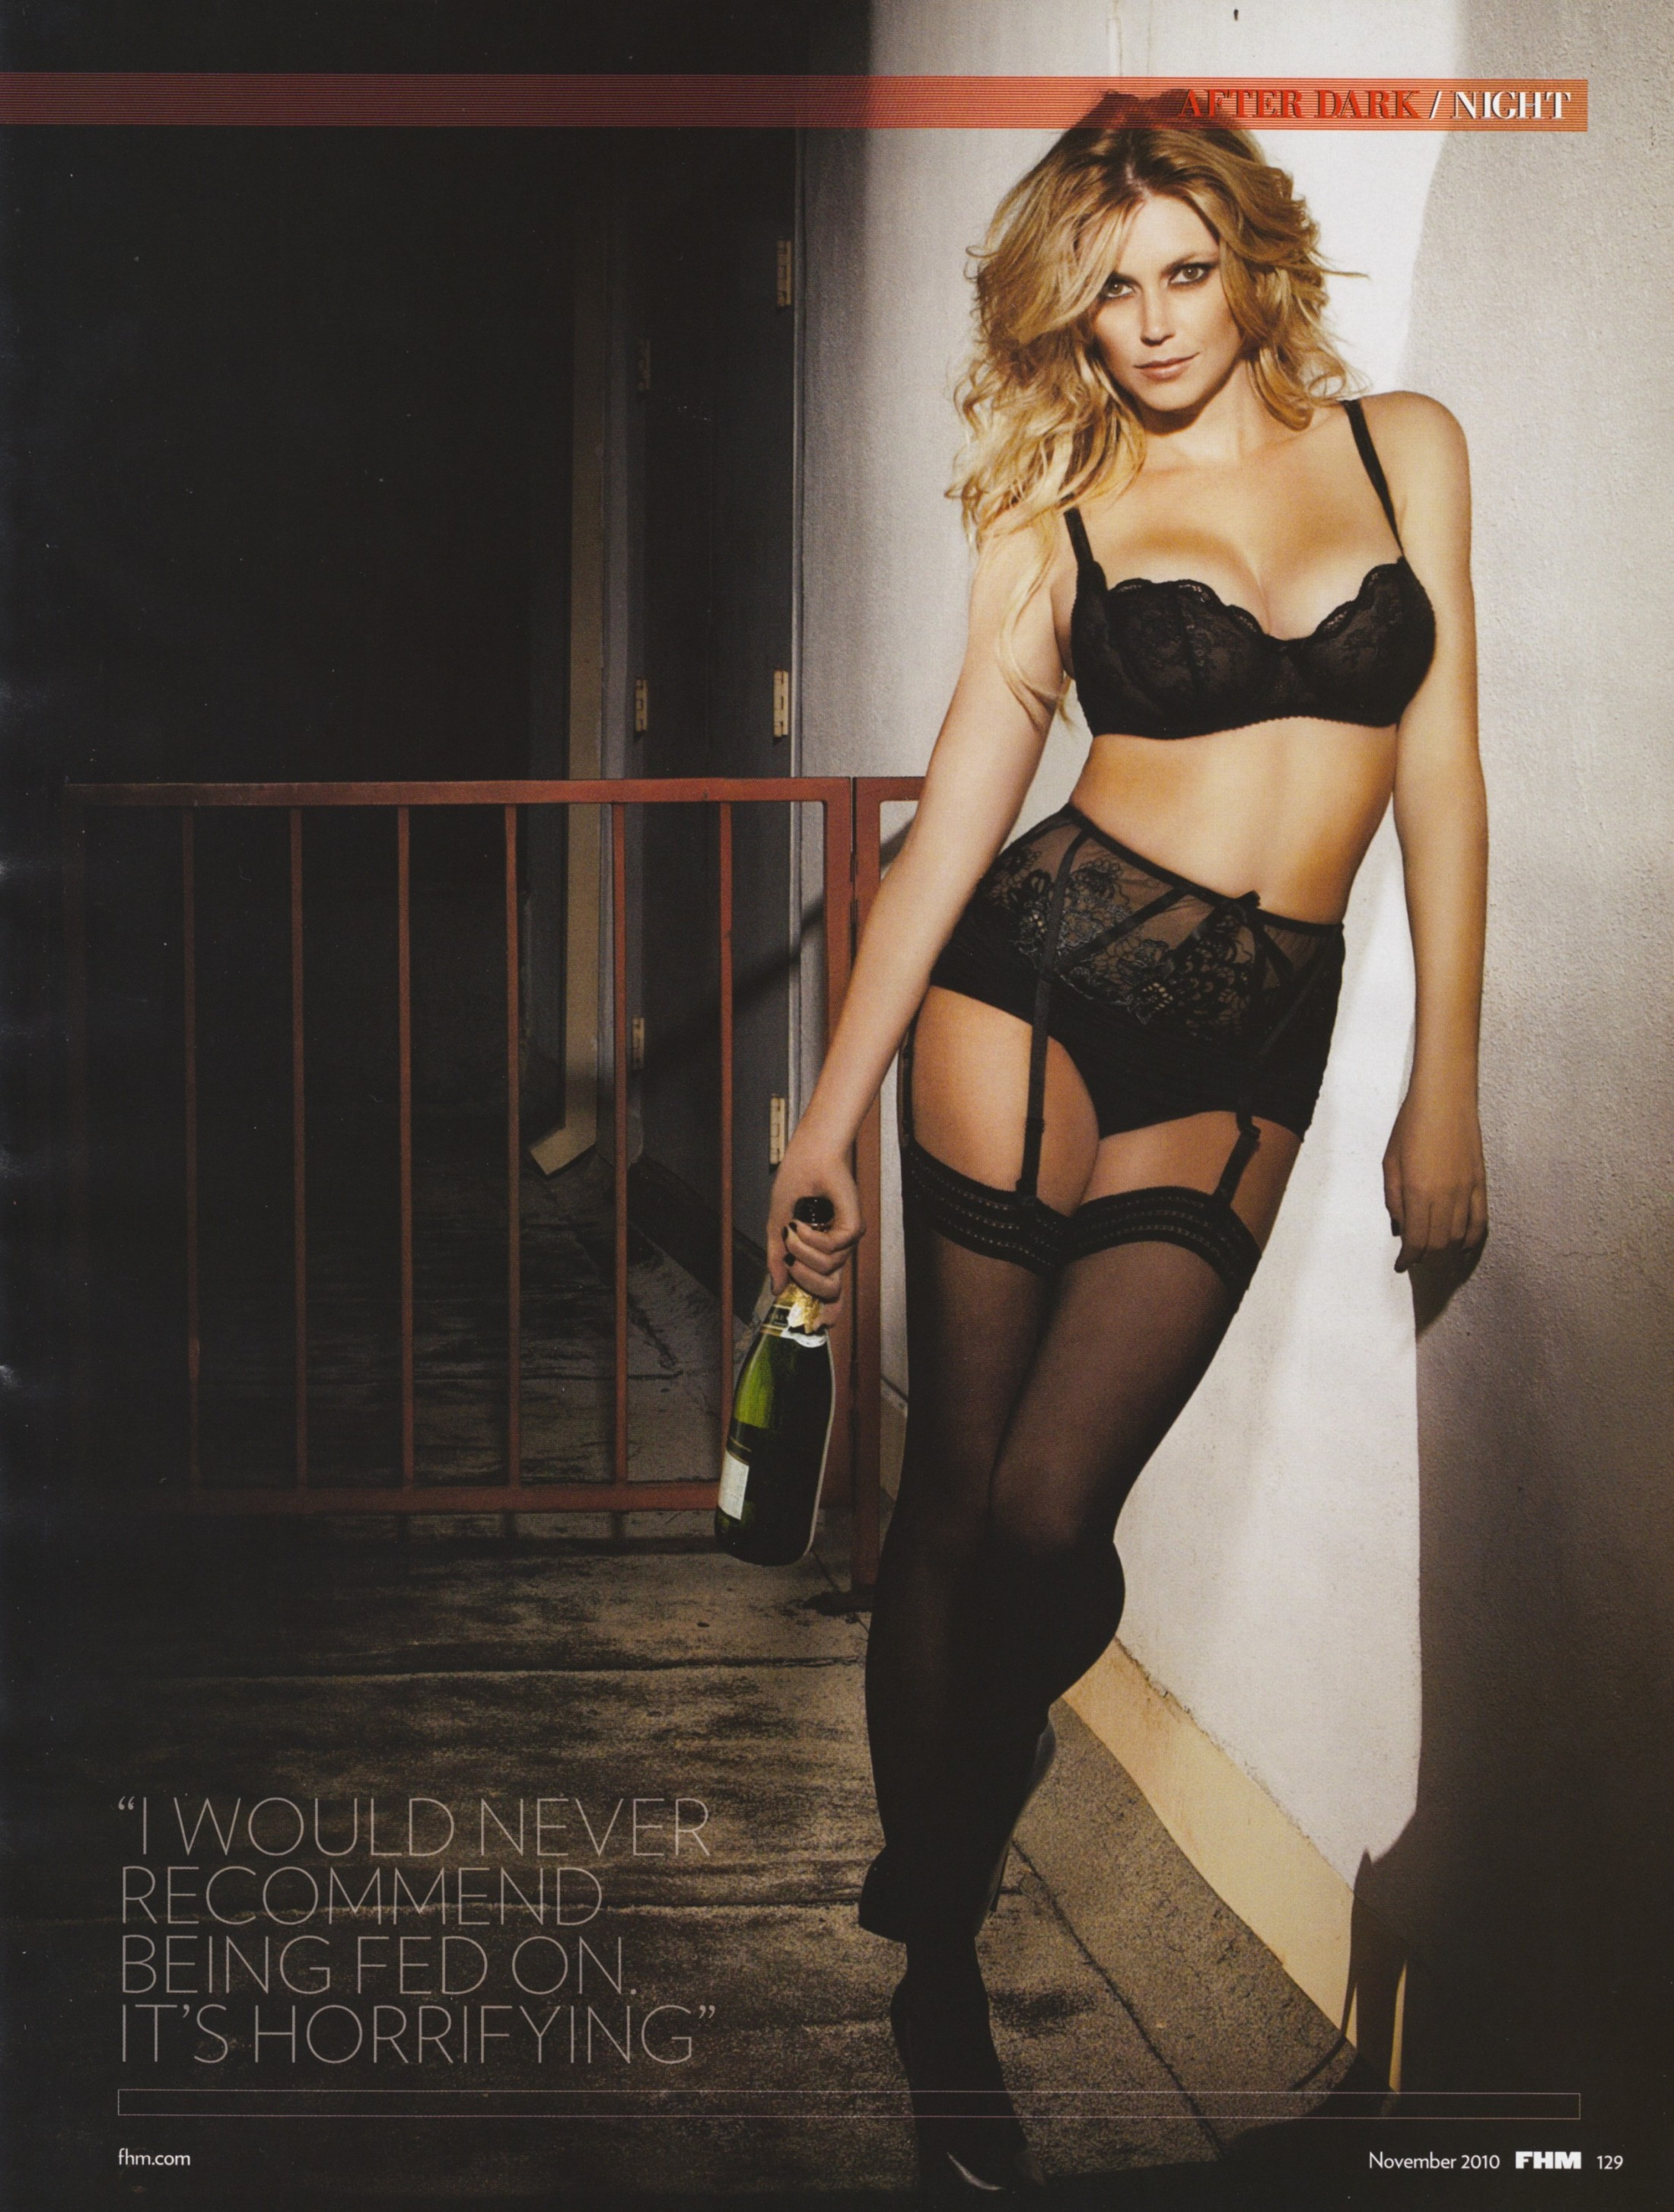 diora-baird-fhm-magazine-nov-2010-issue-hq-scans-04